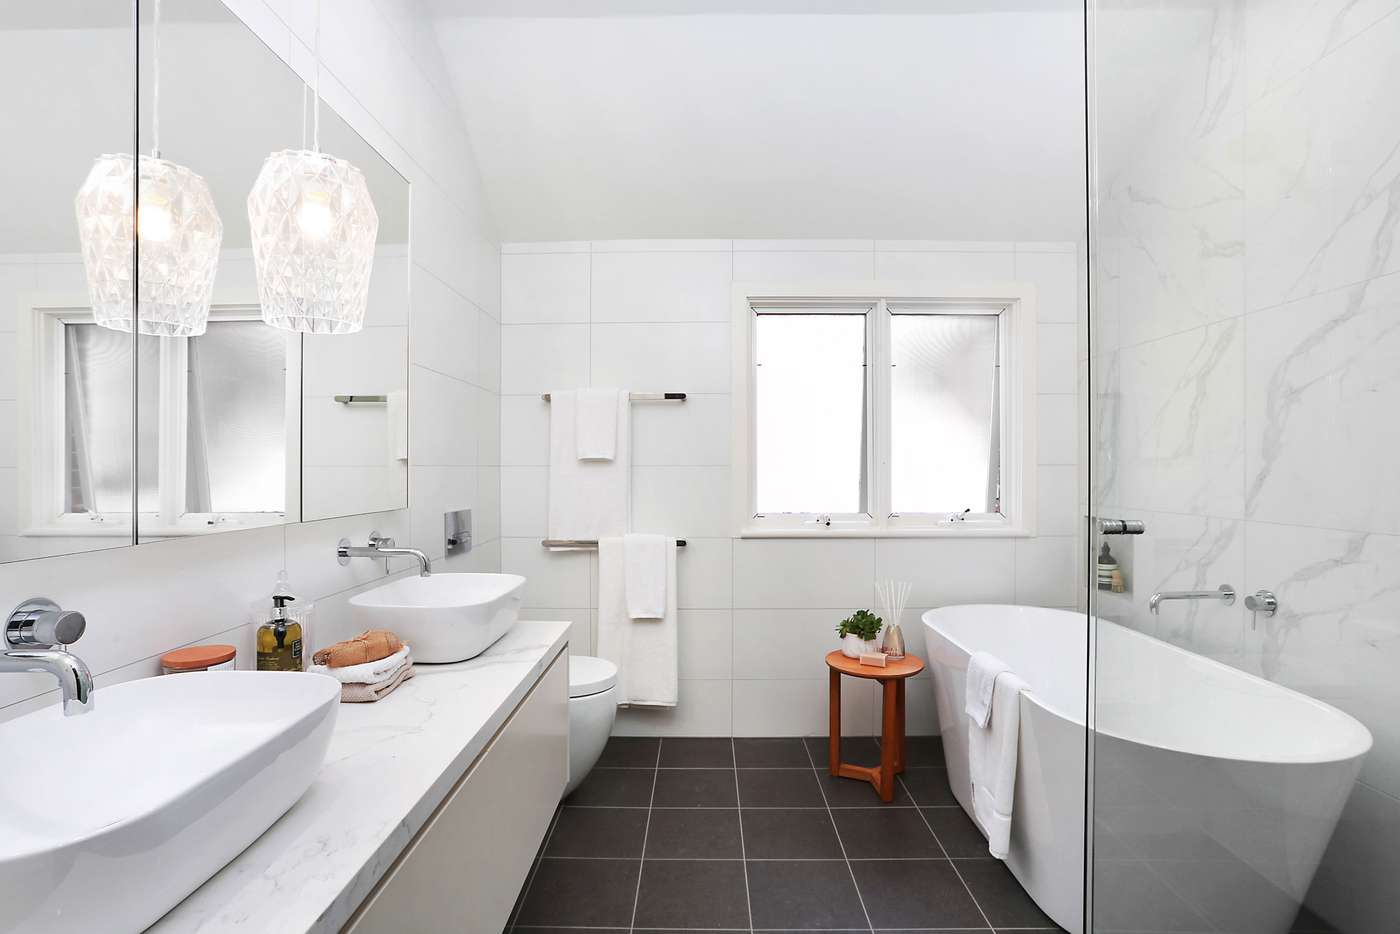 Sixth view of Homely house listing, 99 Middle Head Road, Mosman NSW 2088